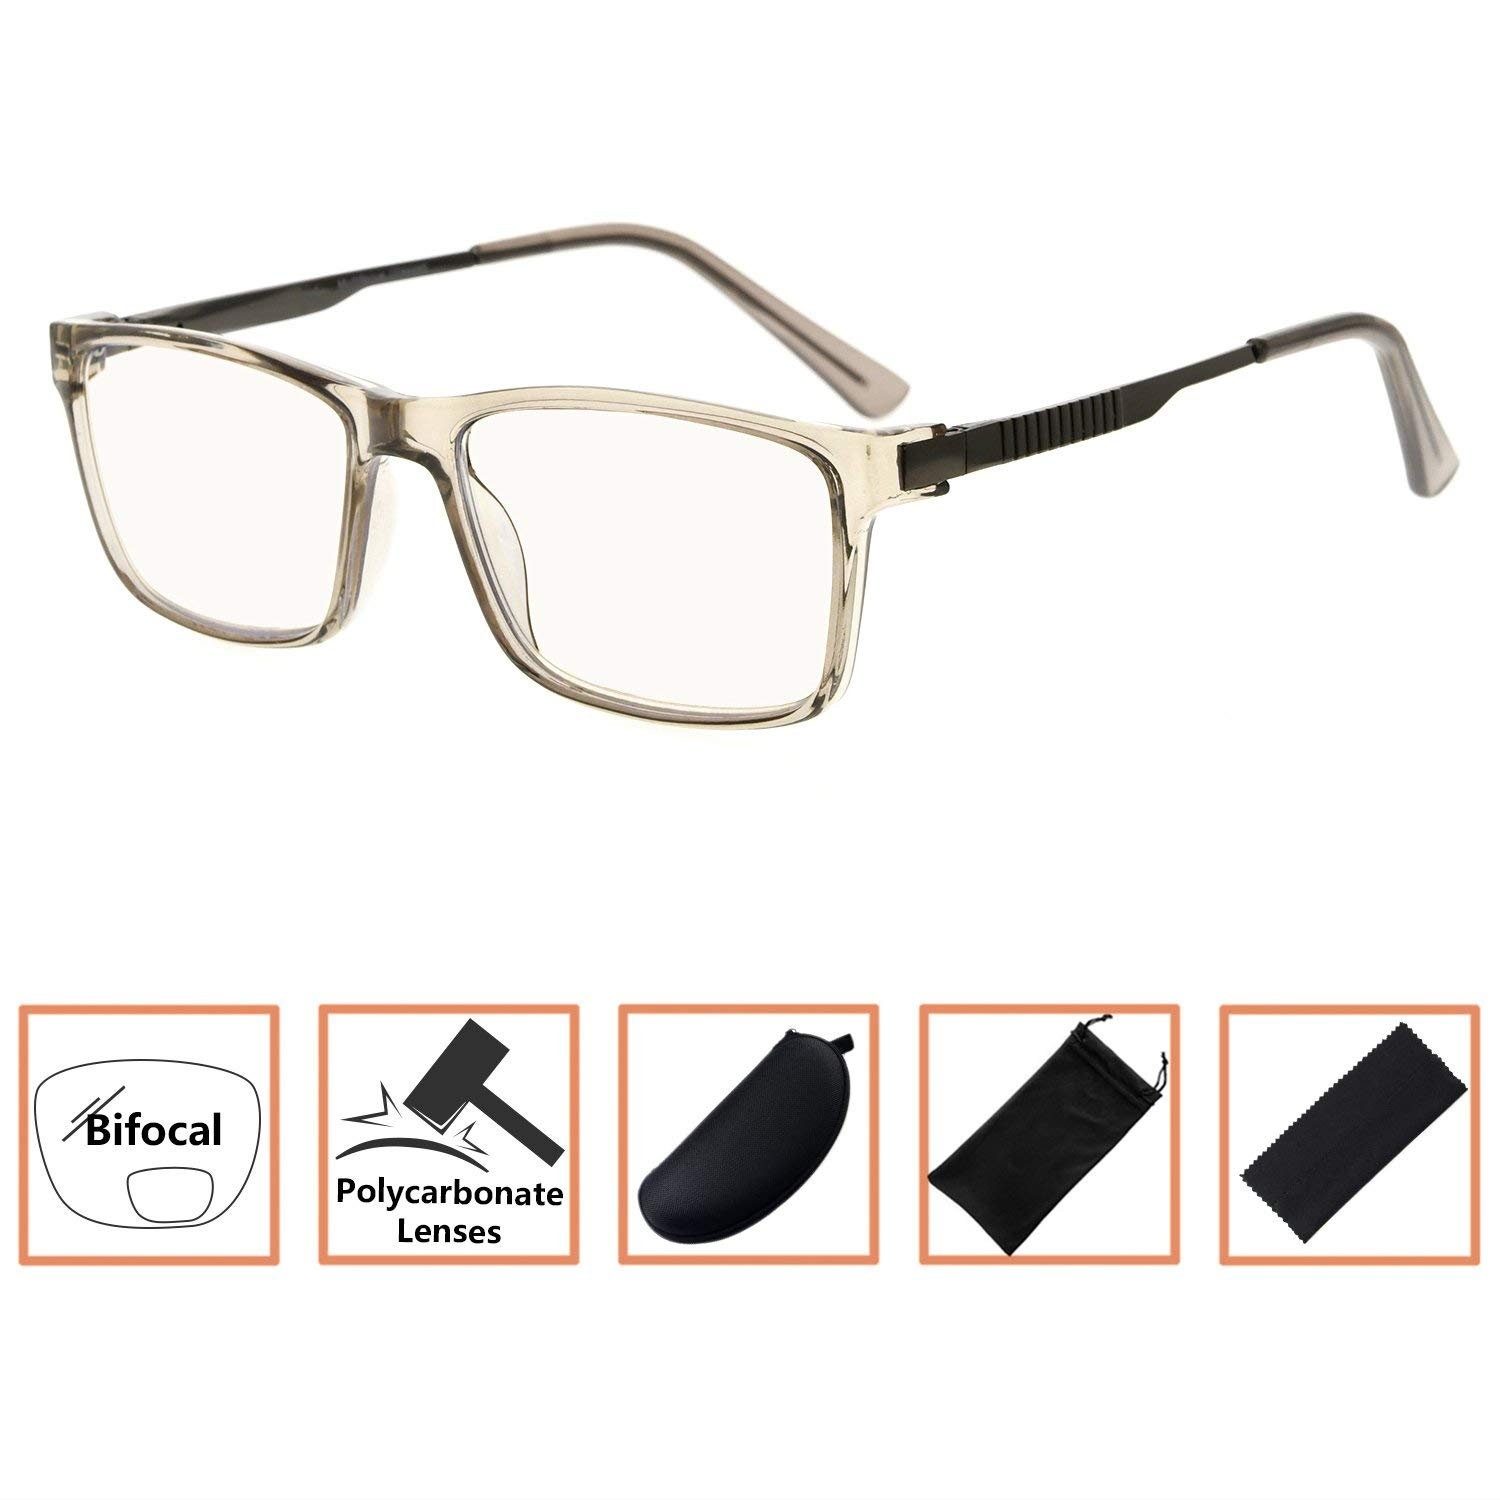 28259157e64d Get Quotations · Noline Bifocal Progressive Multifocus Glasses 3 Levels  Vision Reading Glasses Amber Tinted Blue Light Blocking